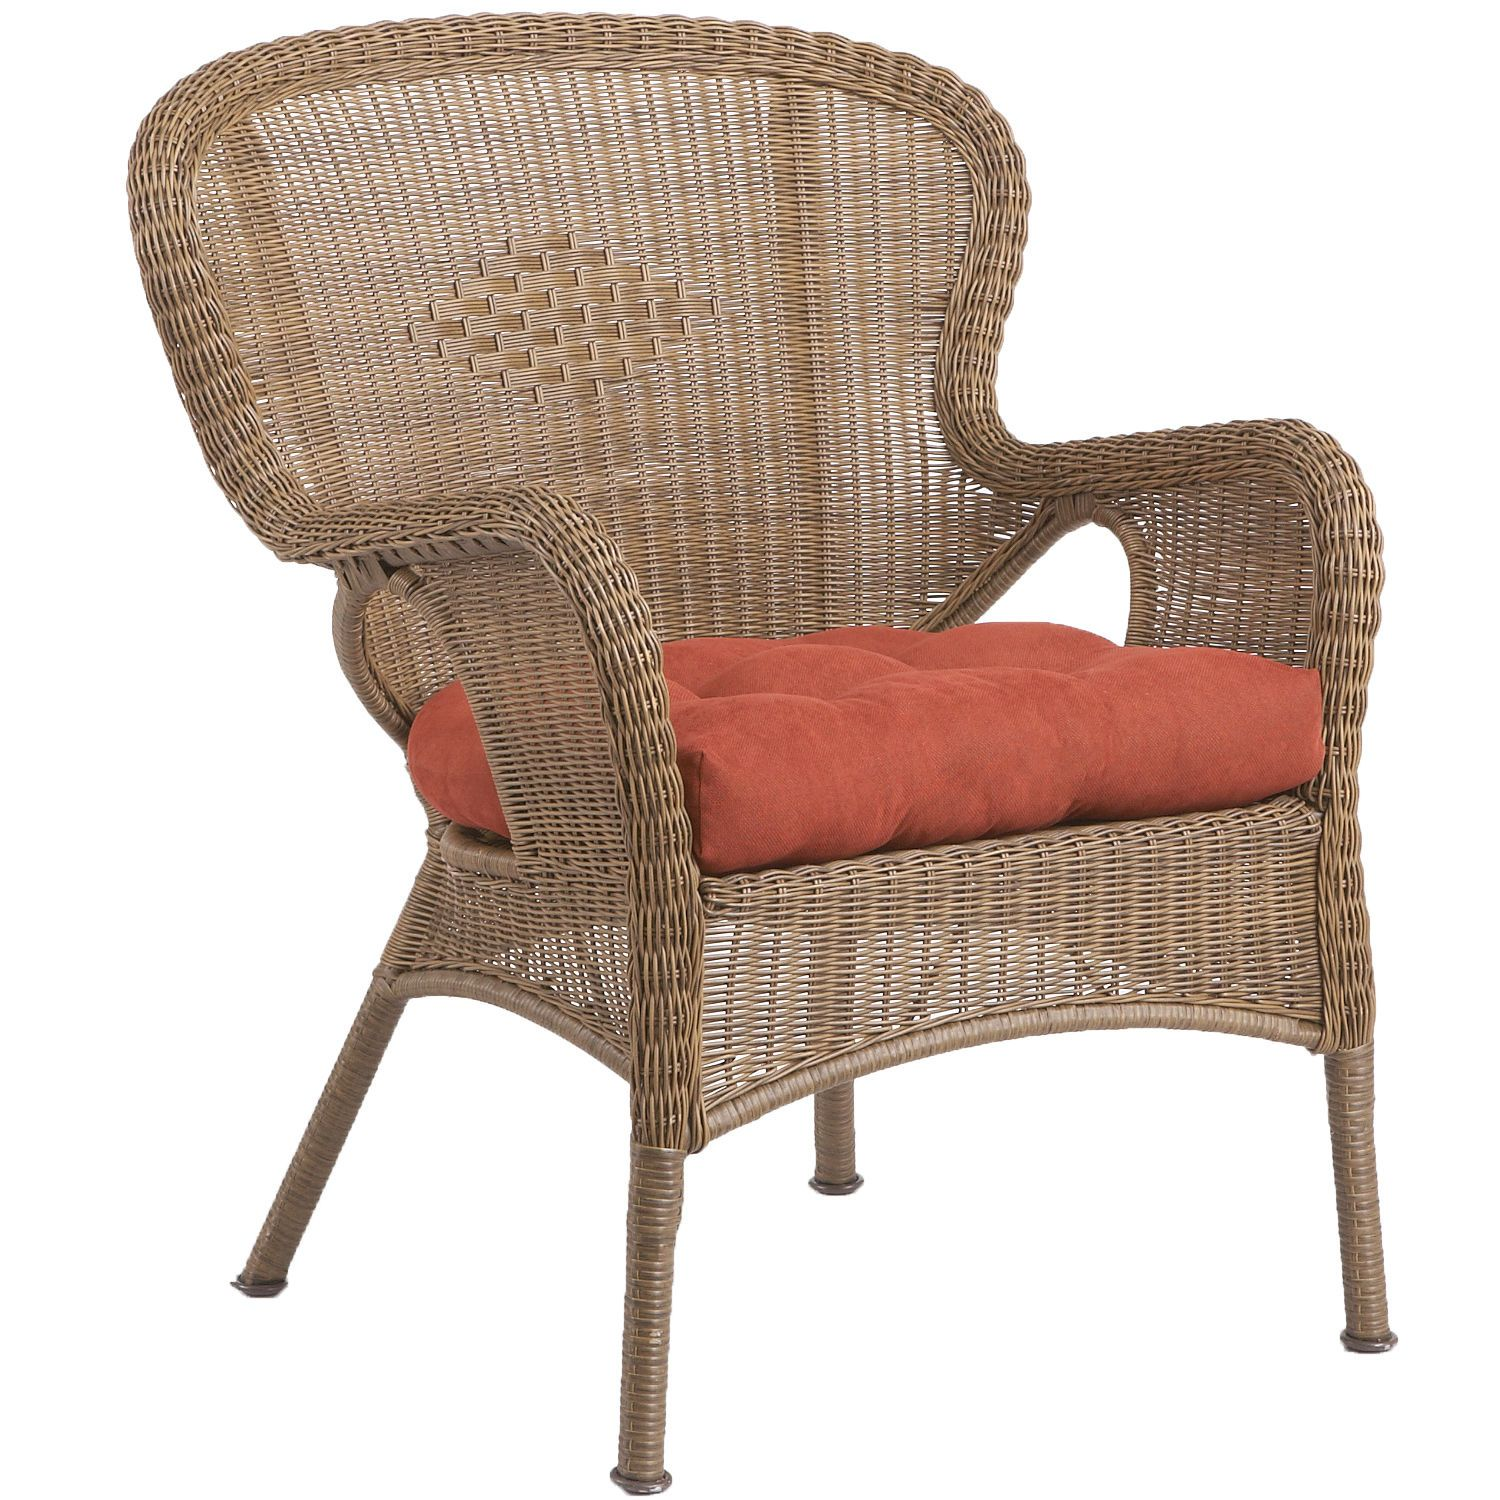 Coco Cove Armchair - Honey | Pier 1 Imports (With images ...